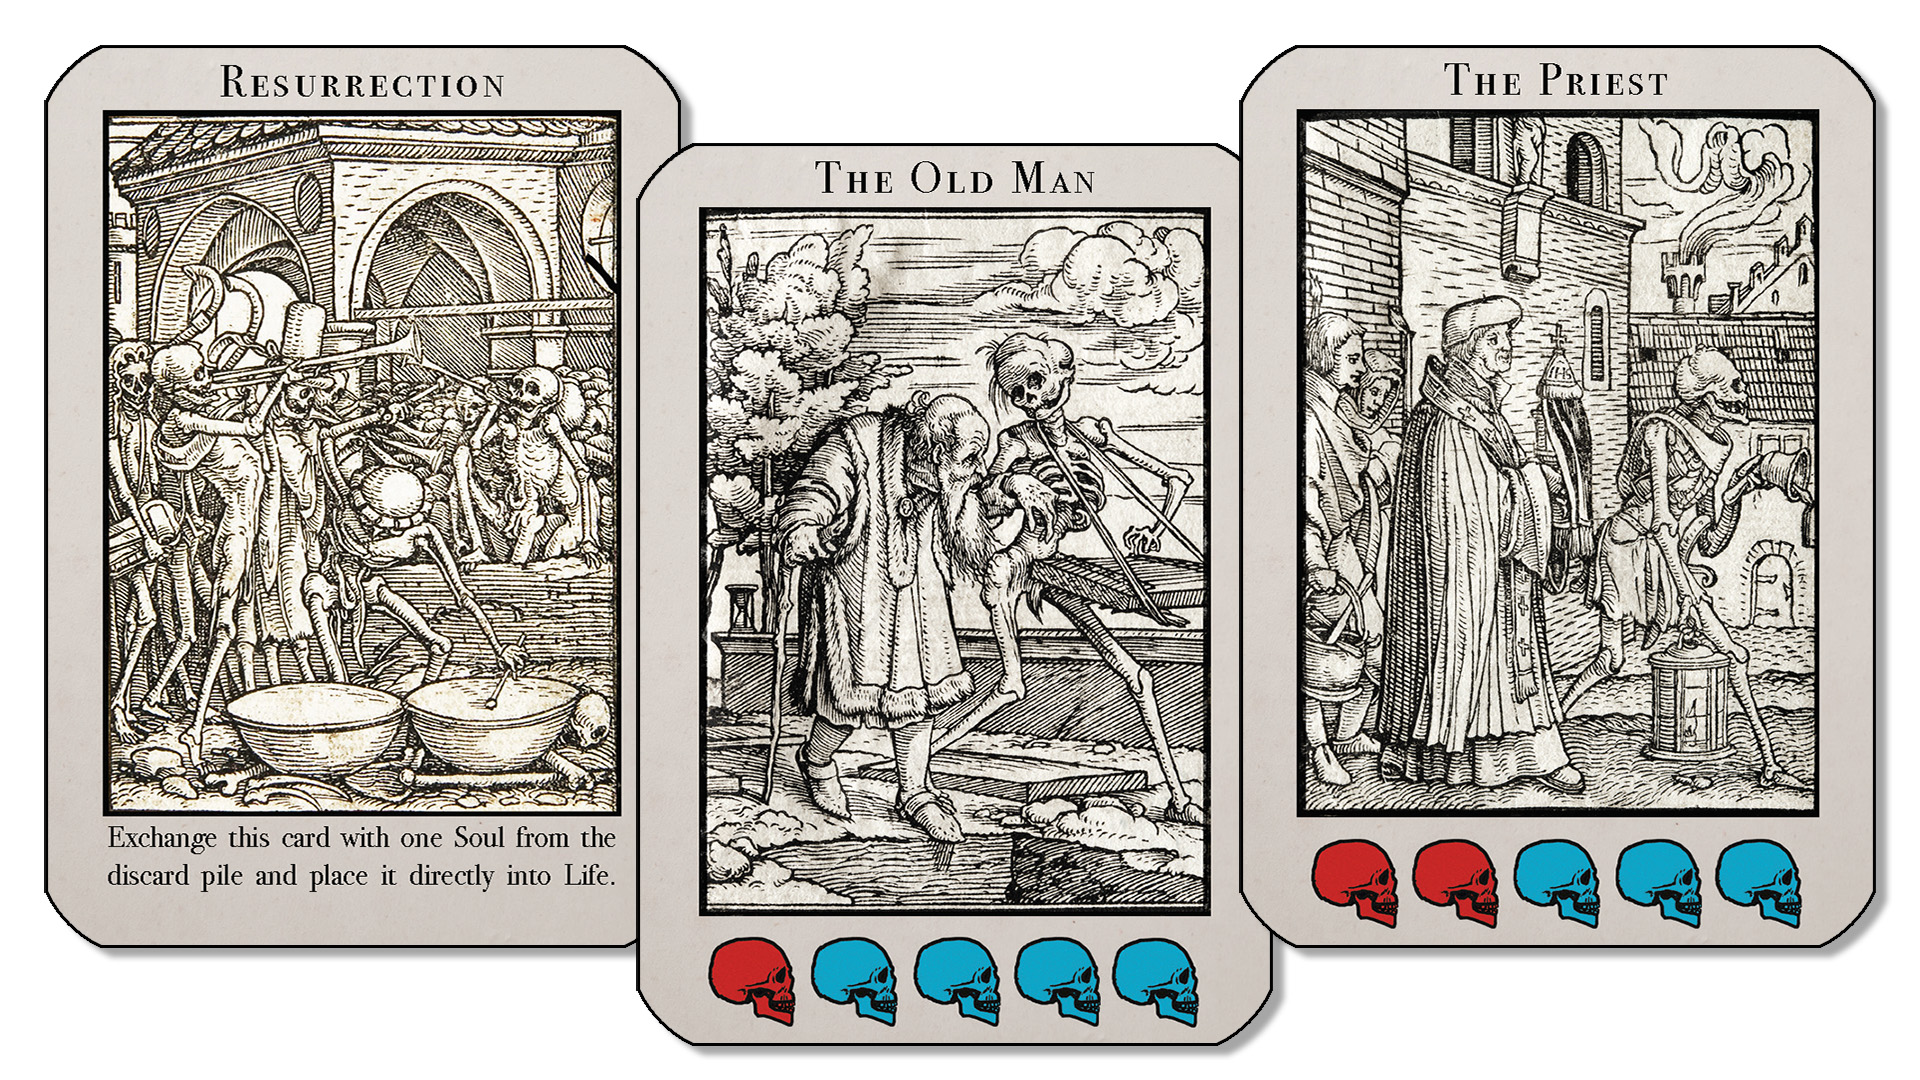 Examples of cards